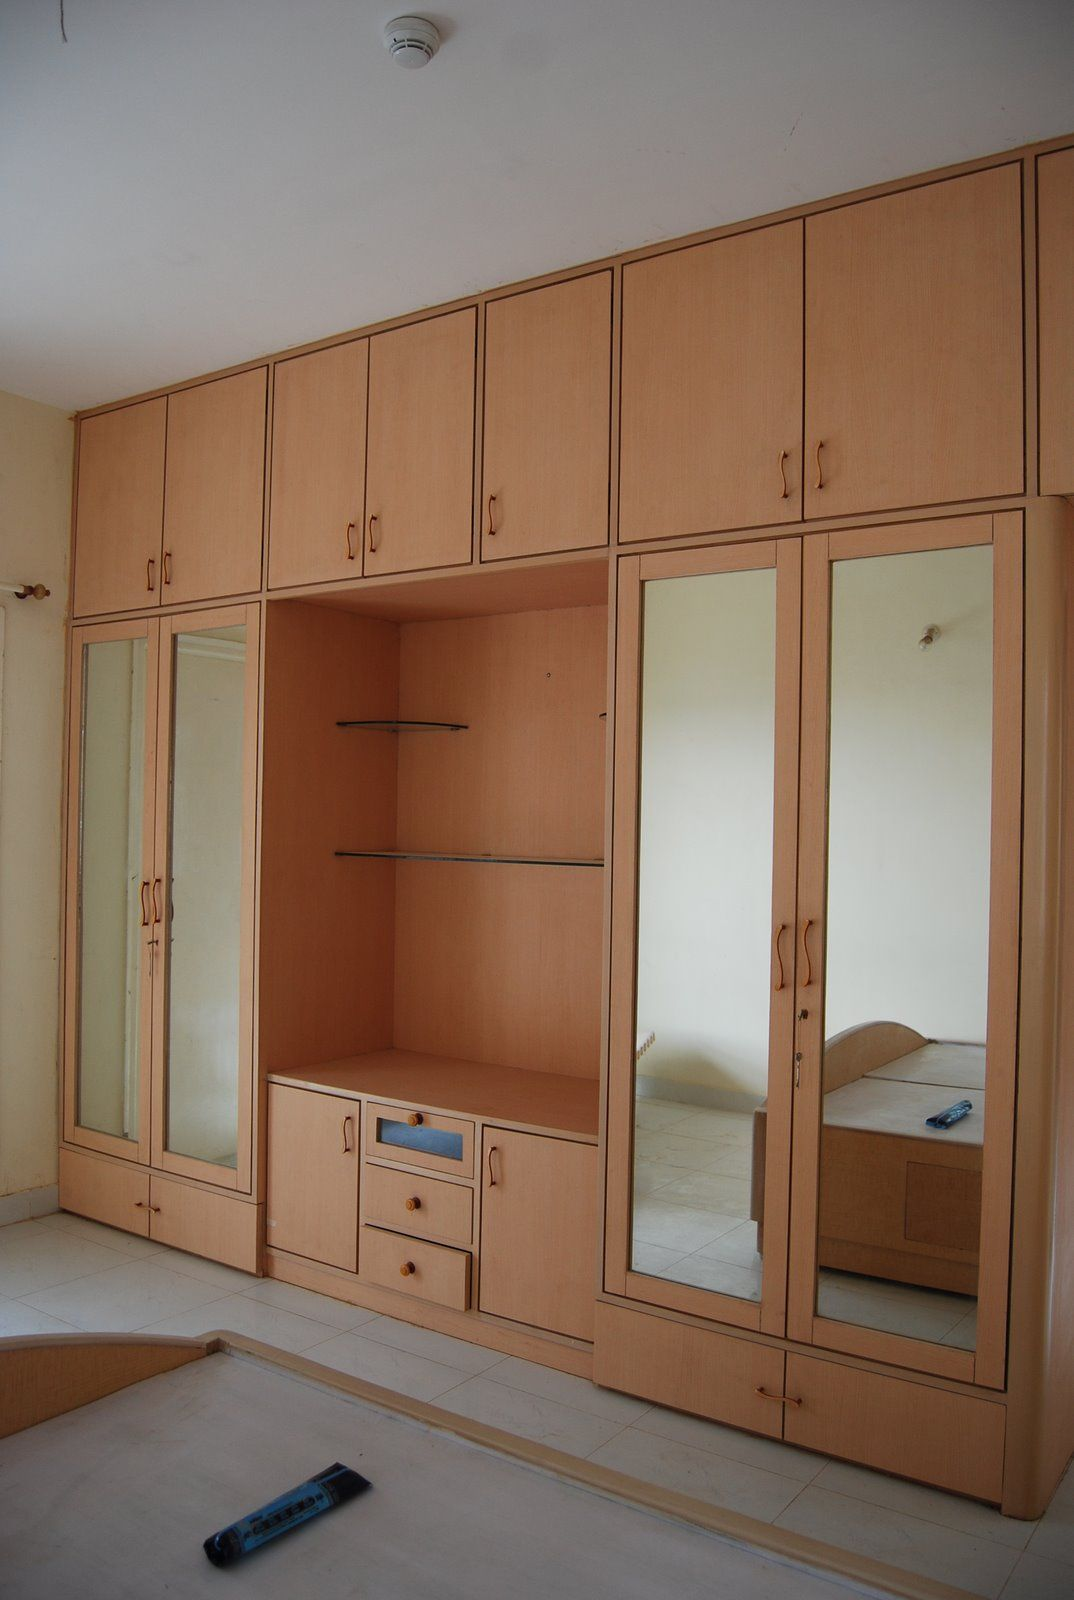 Armoire à Clés Design Bedroom Wardrobe Design Playwood Wadrobe With Cabinets